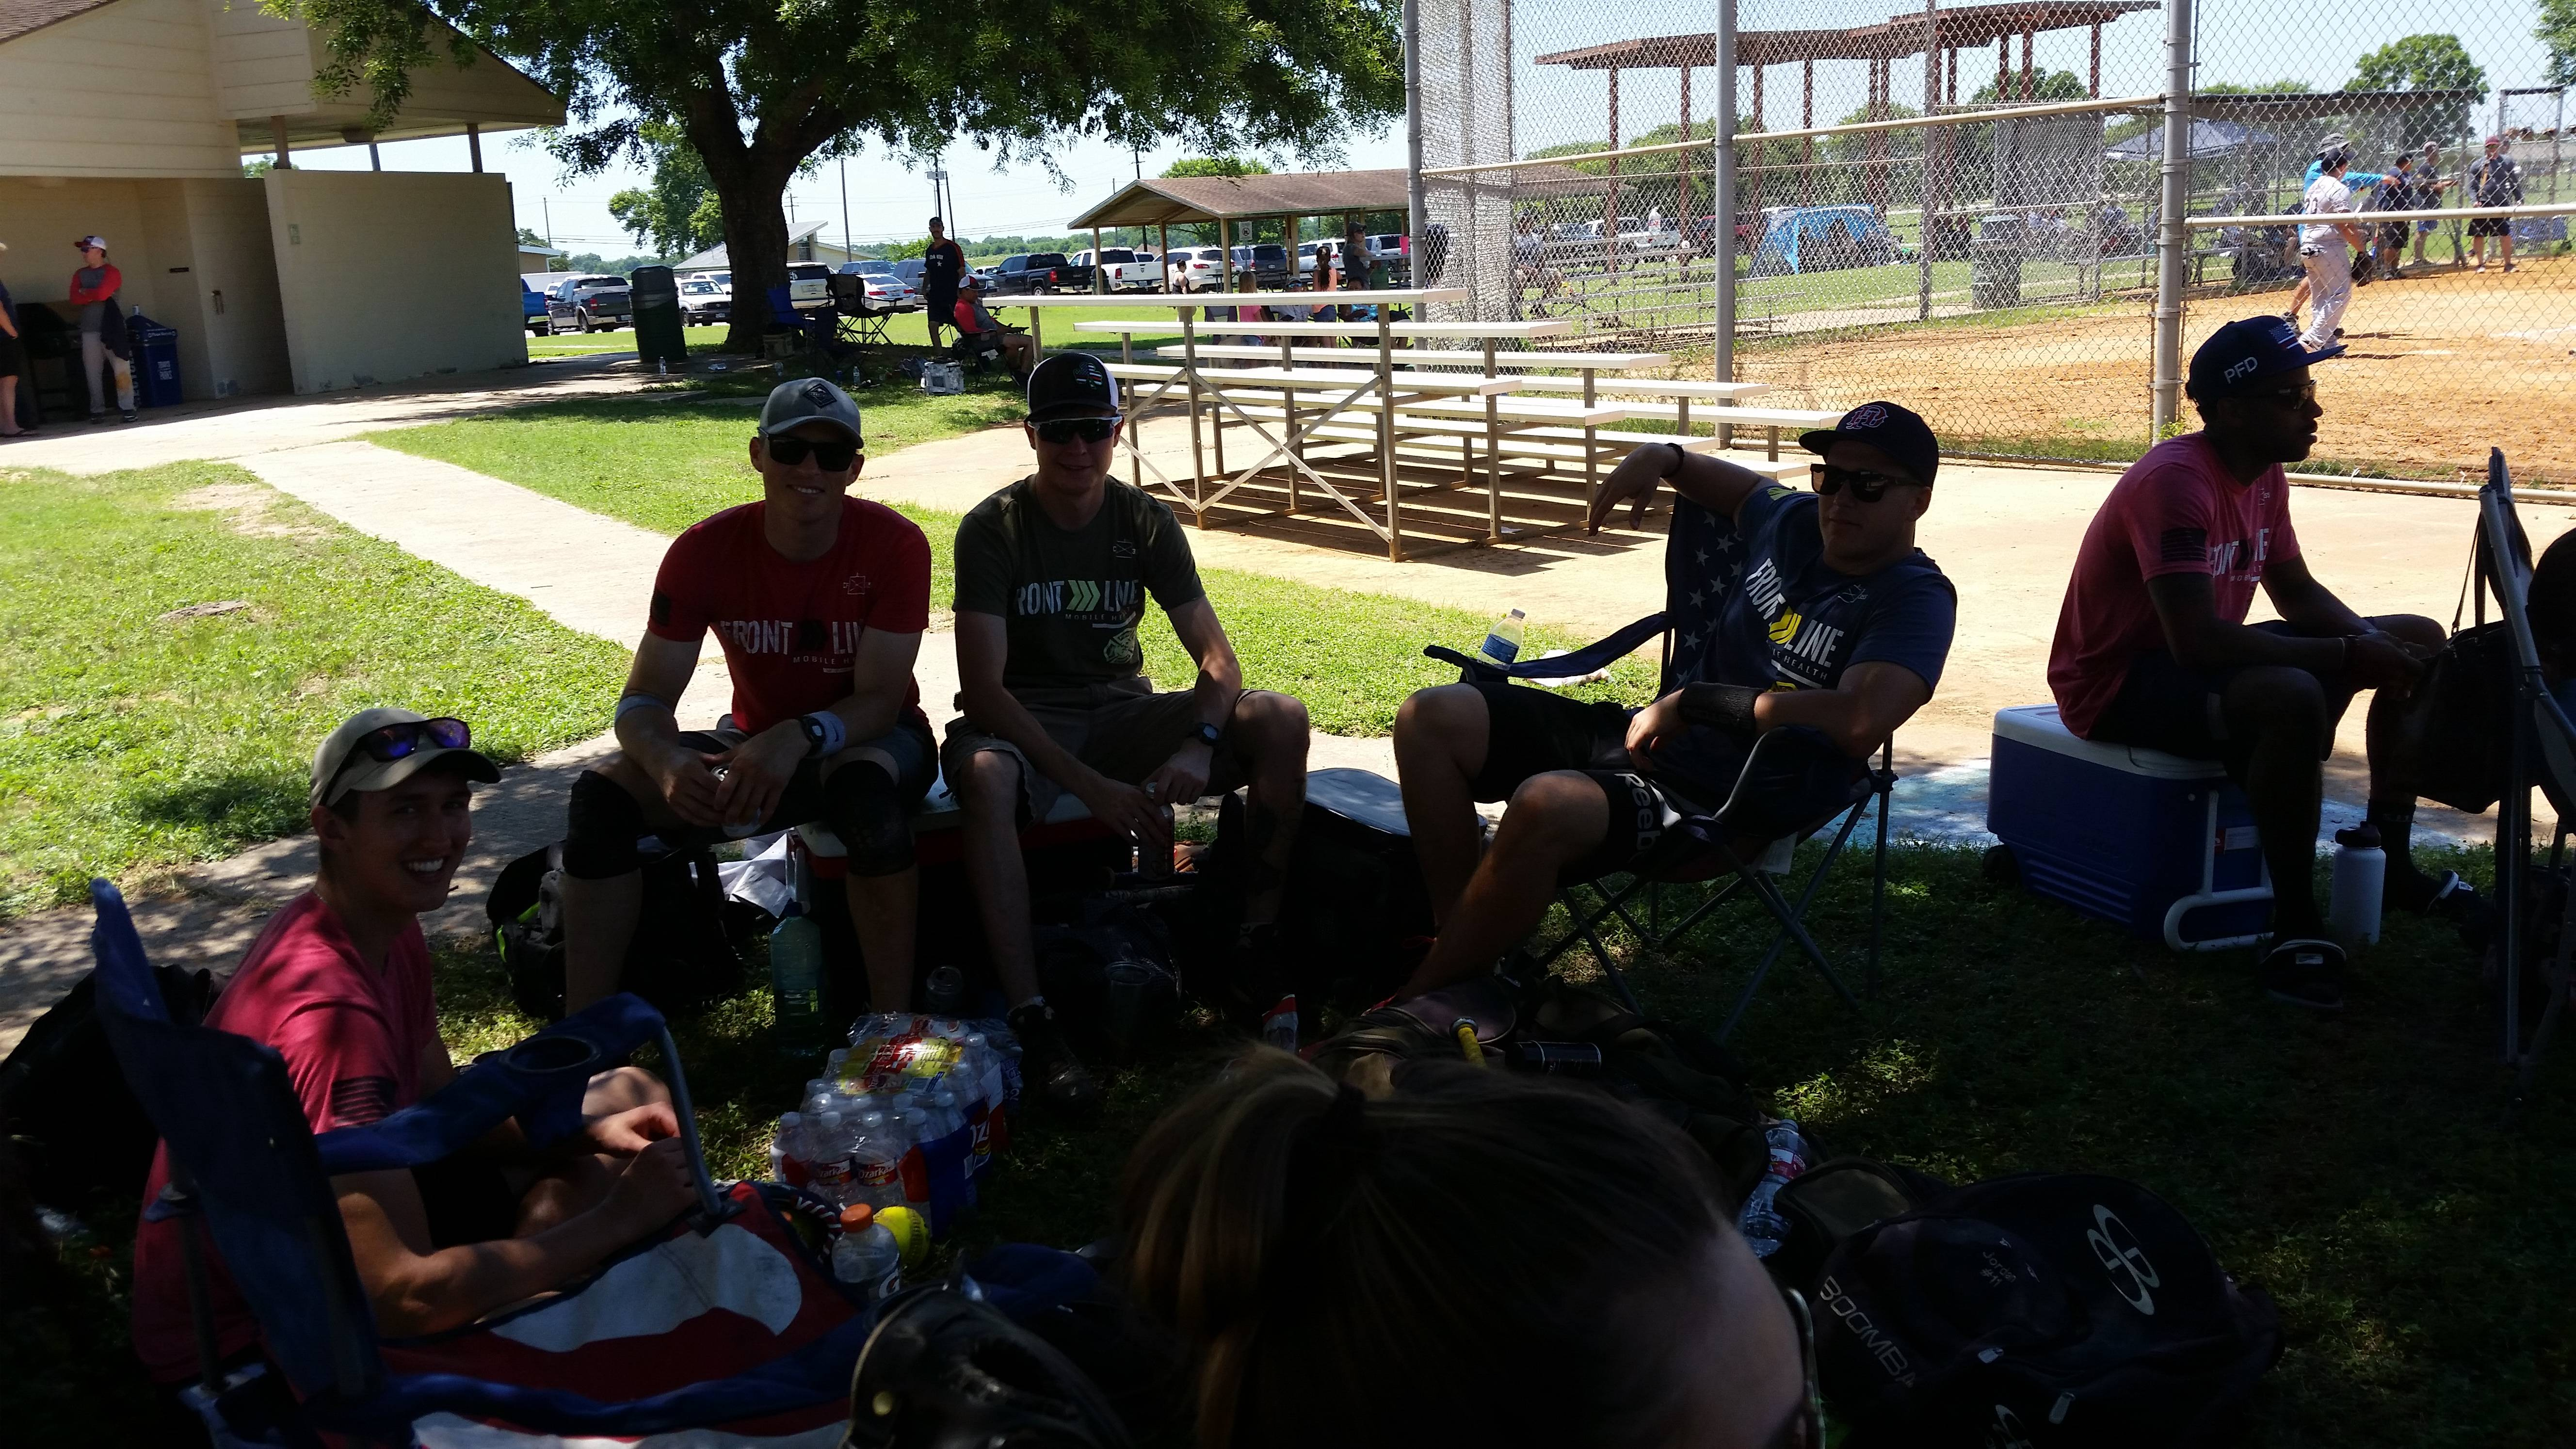 Our hometown Pflugerville team has participated in this tournament all ten years